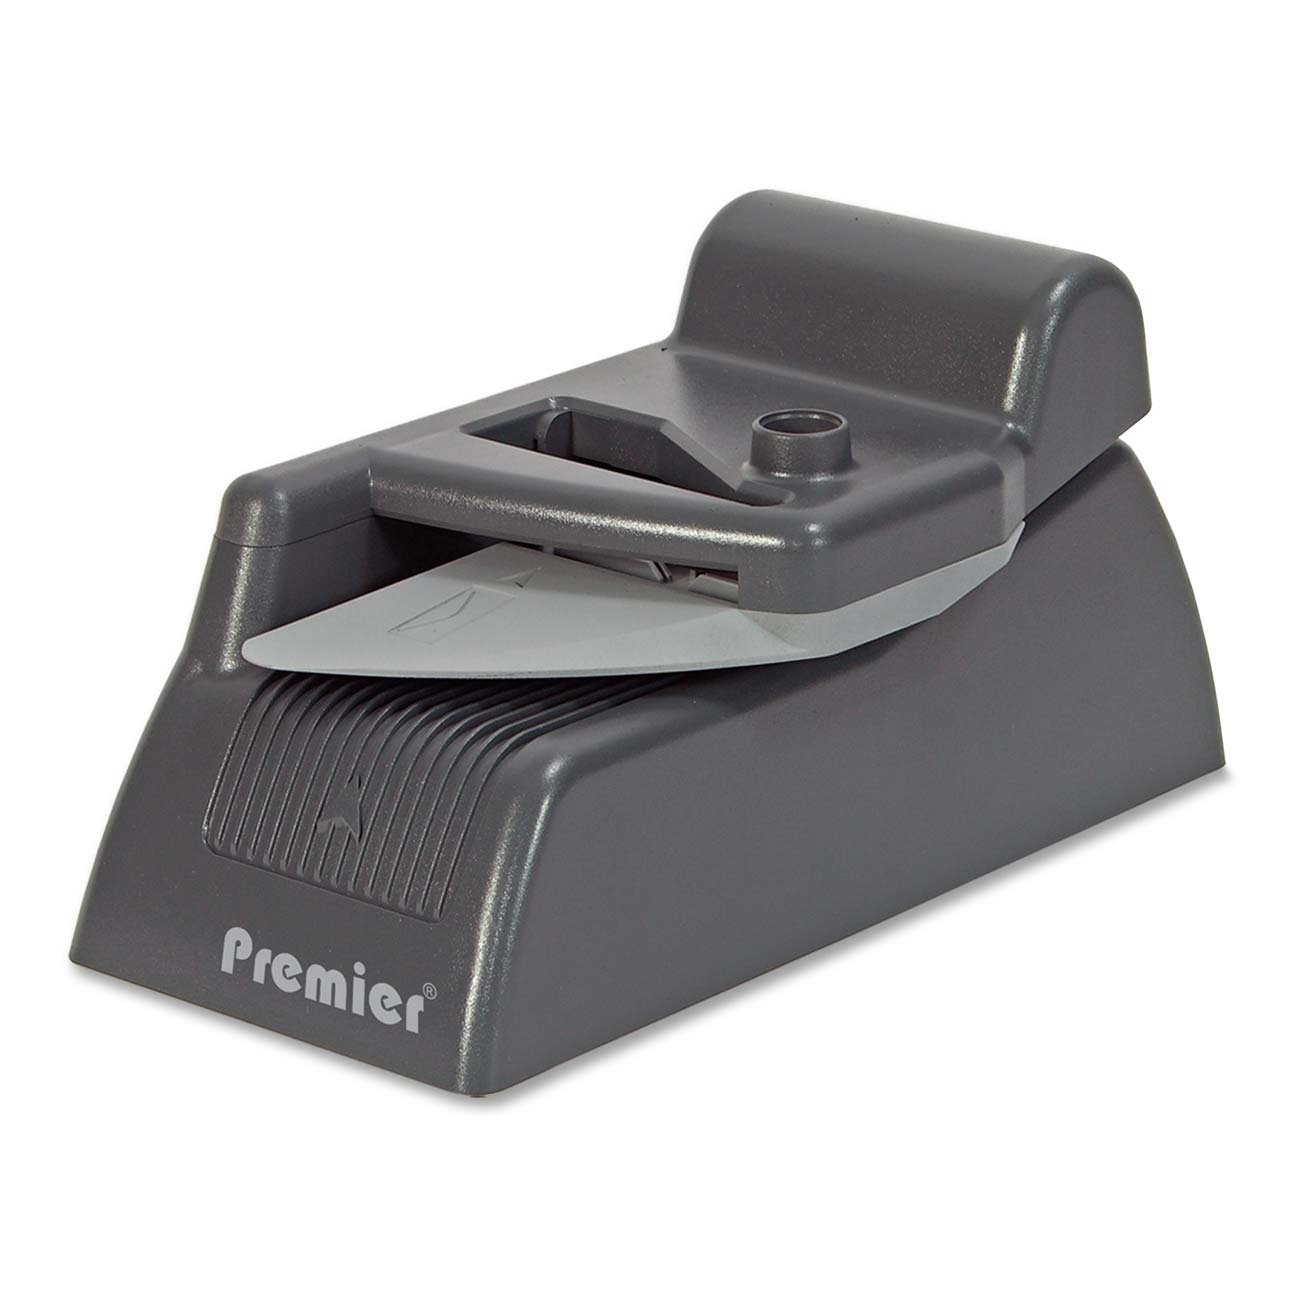 Premier Moistener/Sealer All-in-One, Gray (PRELMS1)